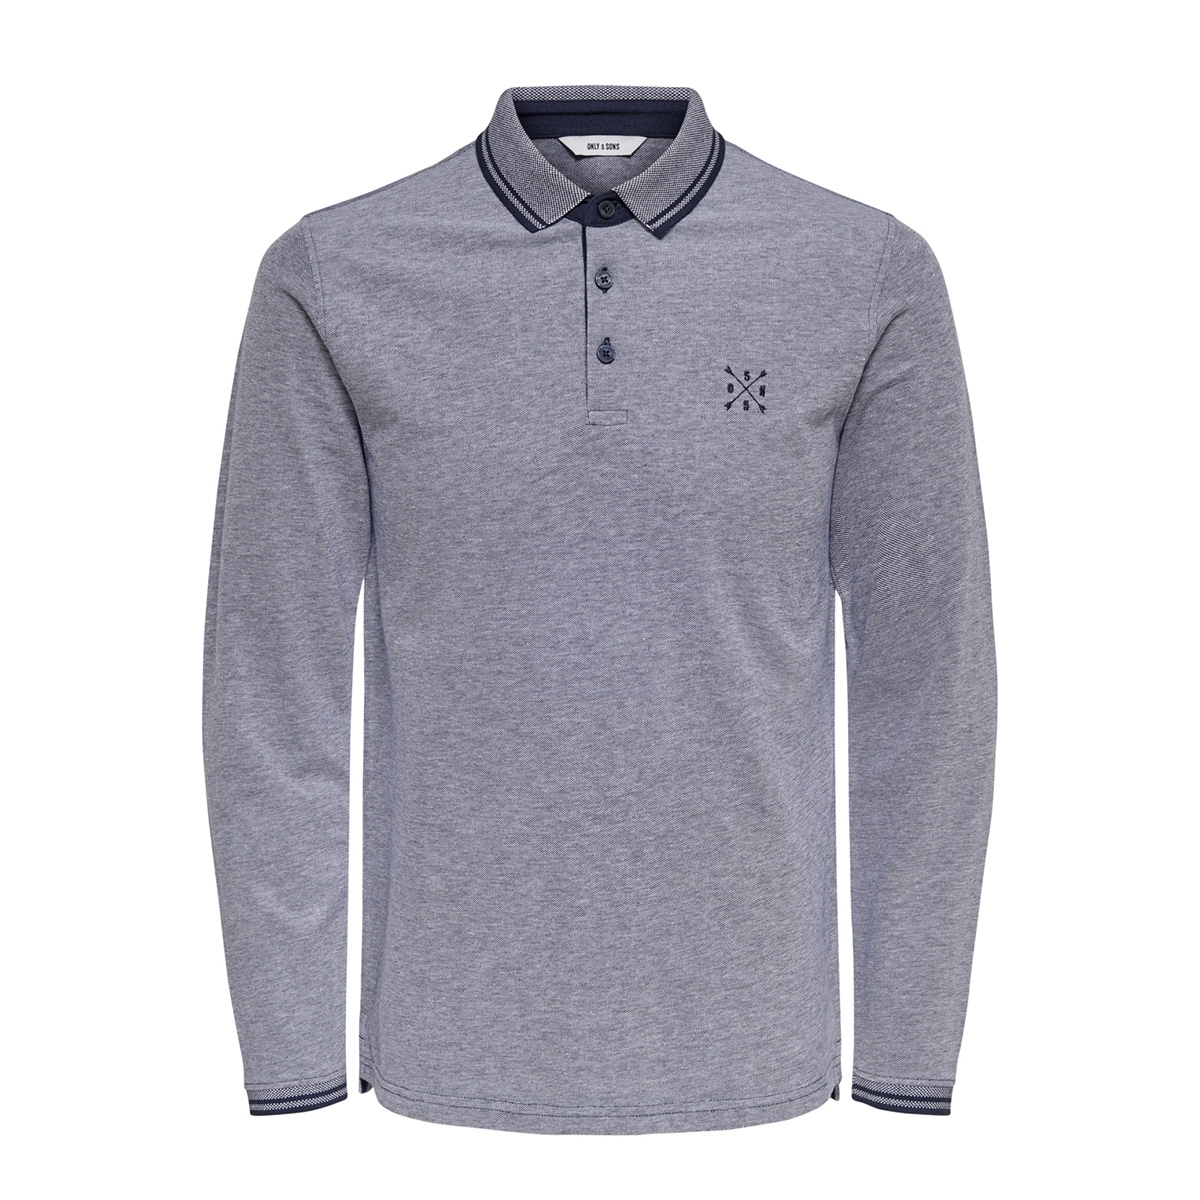 onsstan ls fitted polo 22011275 only & sons polo dress blues